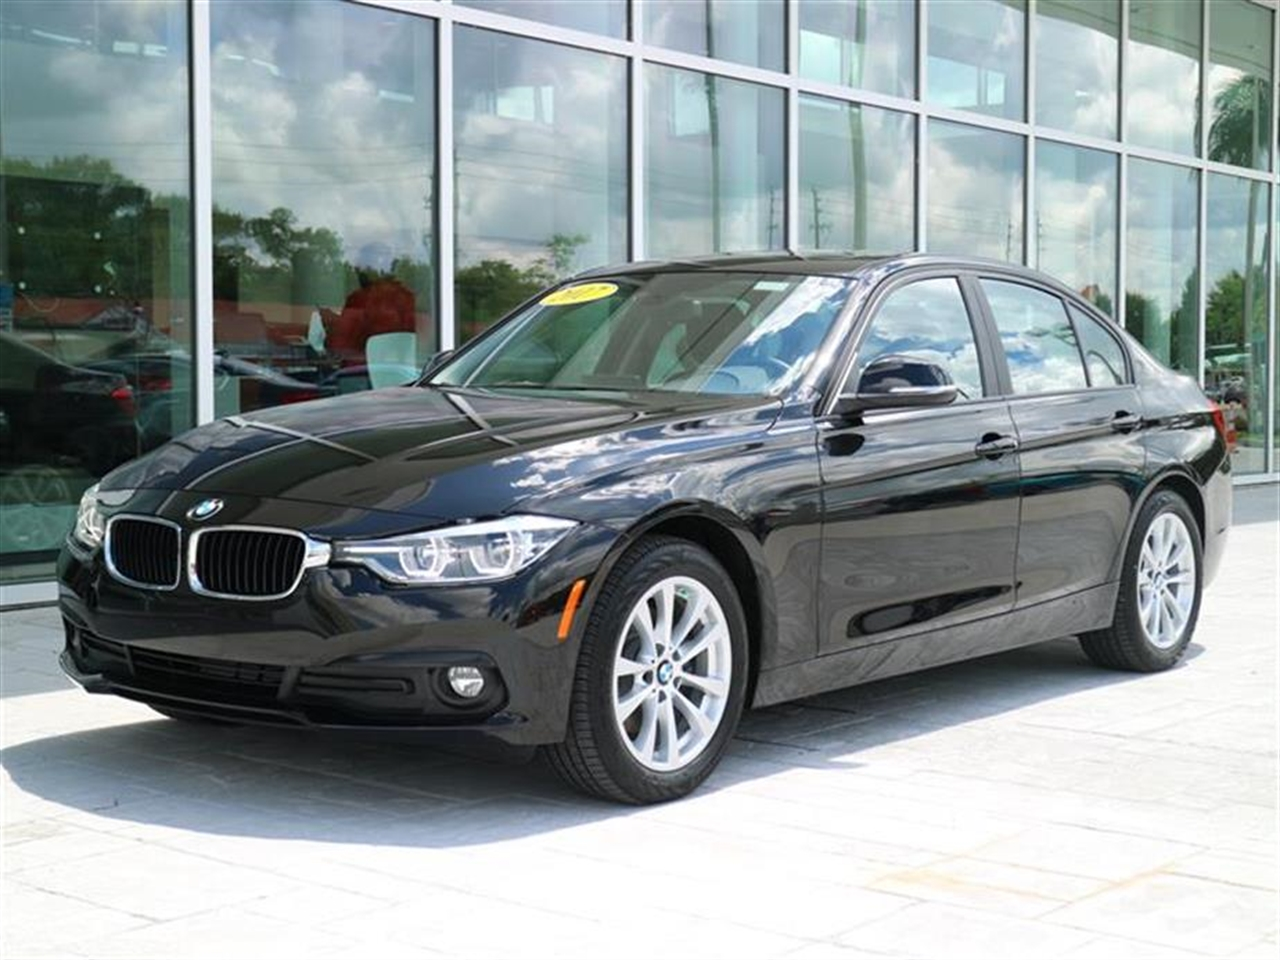 2017 bmw 320i new 43345. Black Bedroom Furniture Sets. Home Design Ideas